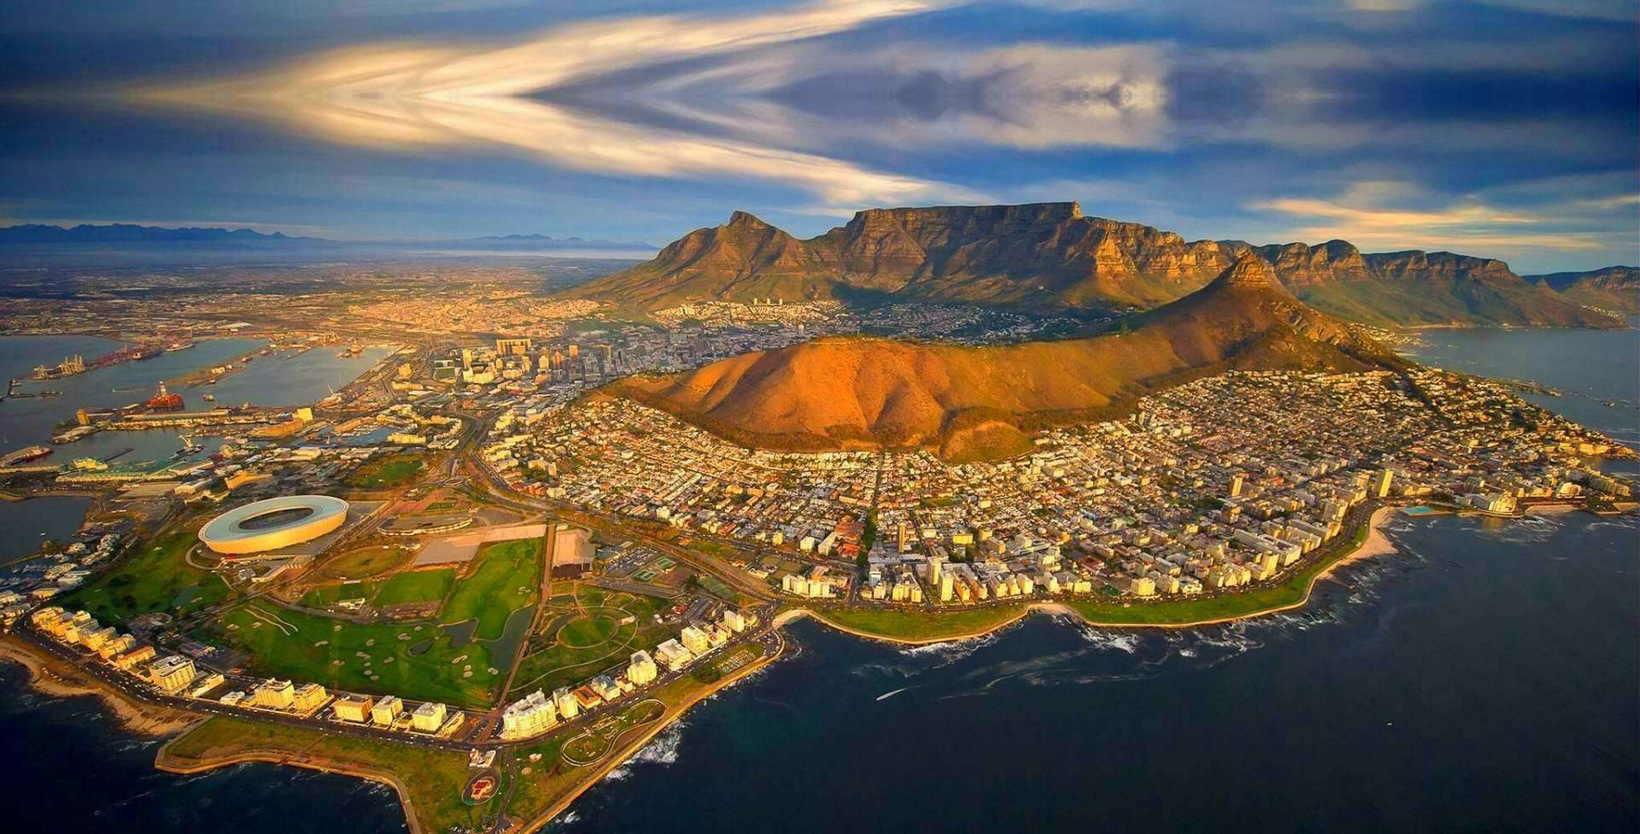 Your Cape Town adventure starts here!